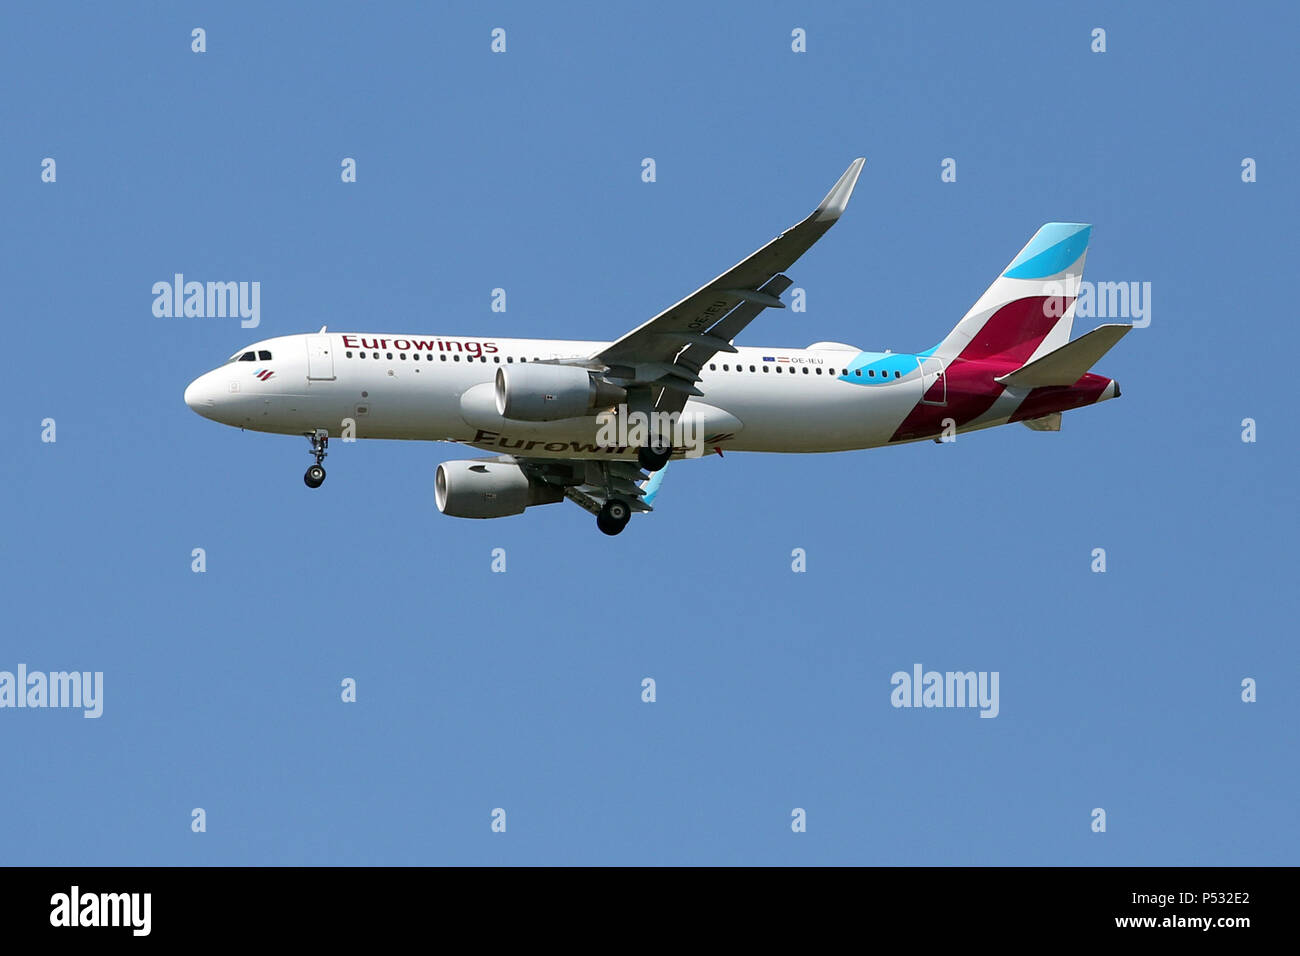 Hannover, Lower Saxony, Germany, Airbus A320-200 of the airline Eurowings - Stock Image